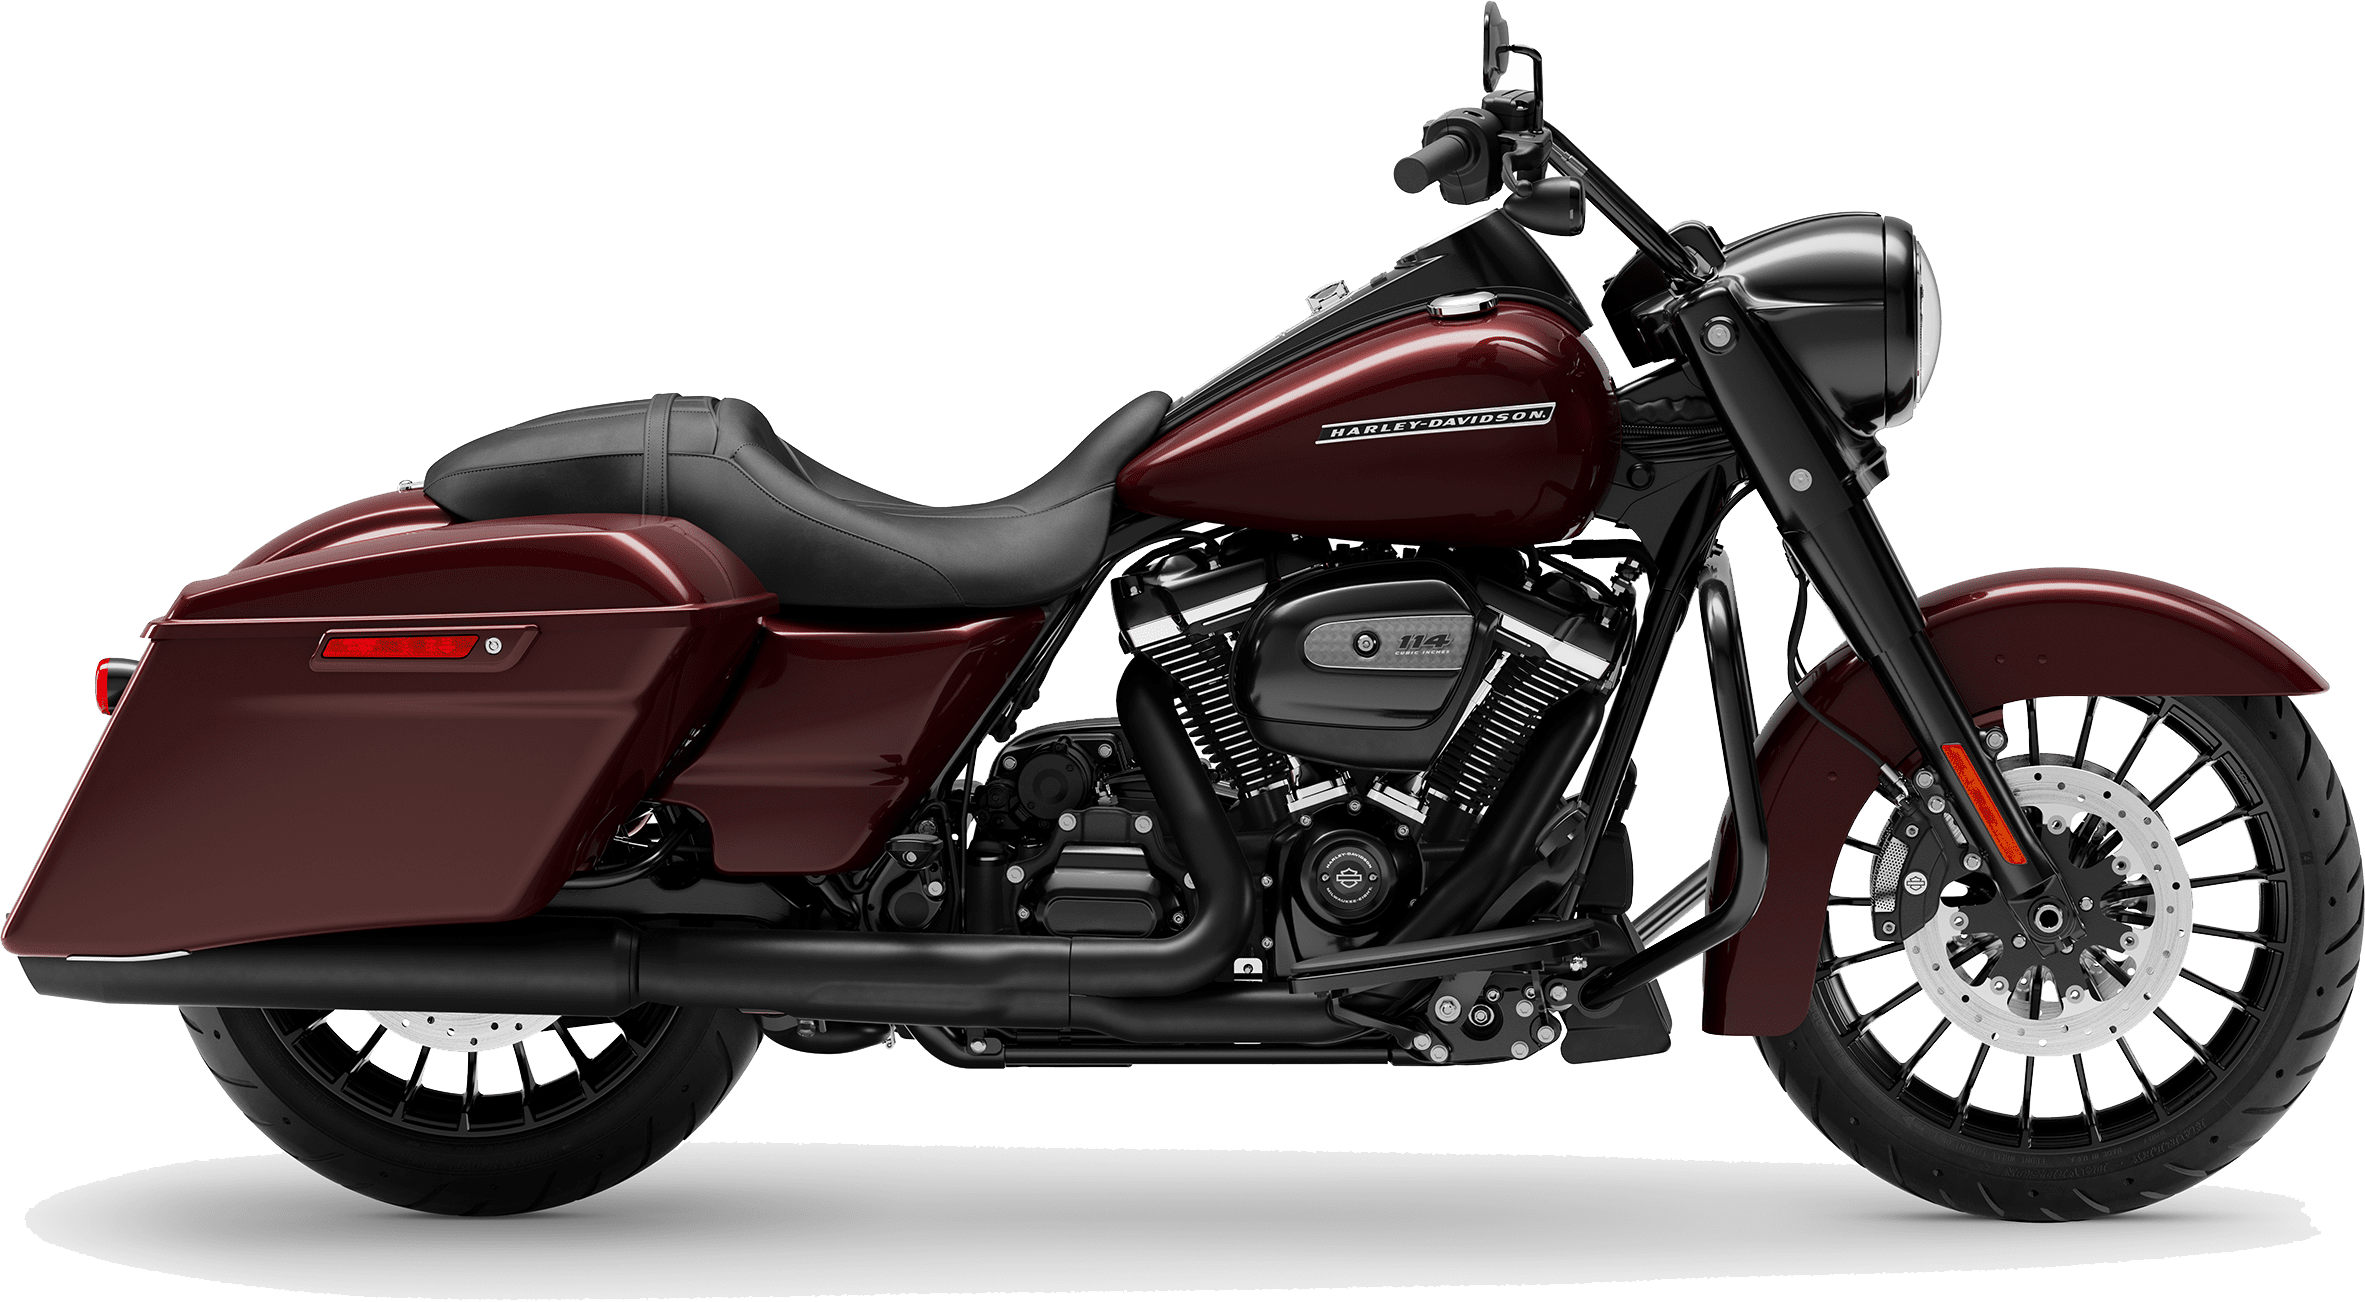 2019 Harley-Davidson H-D Touring Road King Twisted Cherry